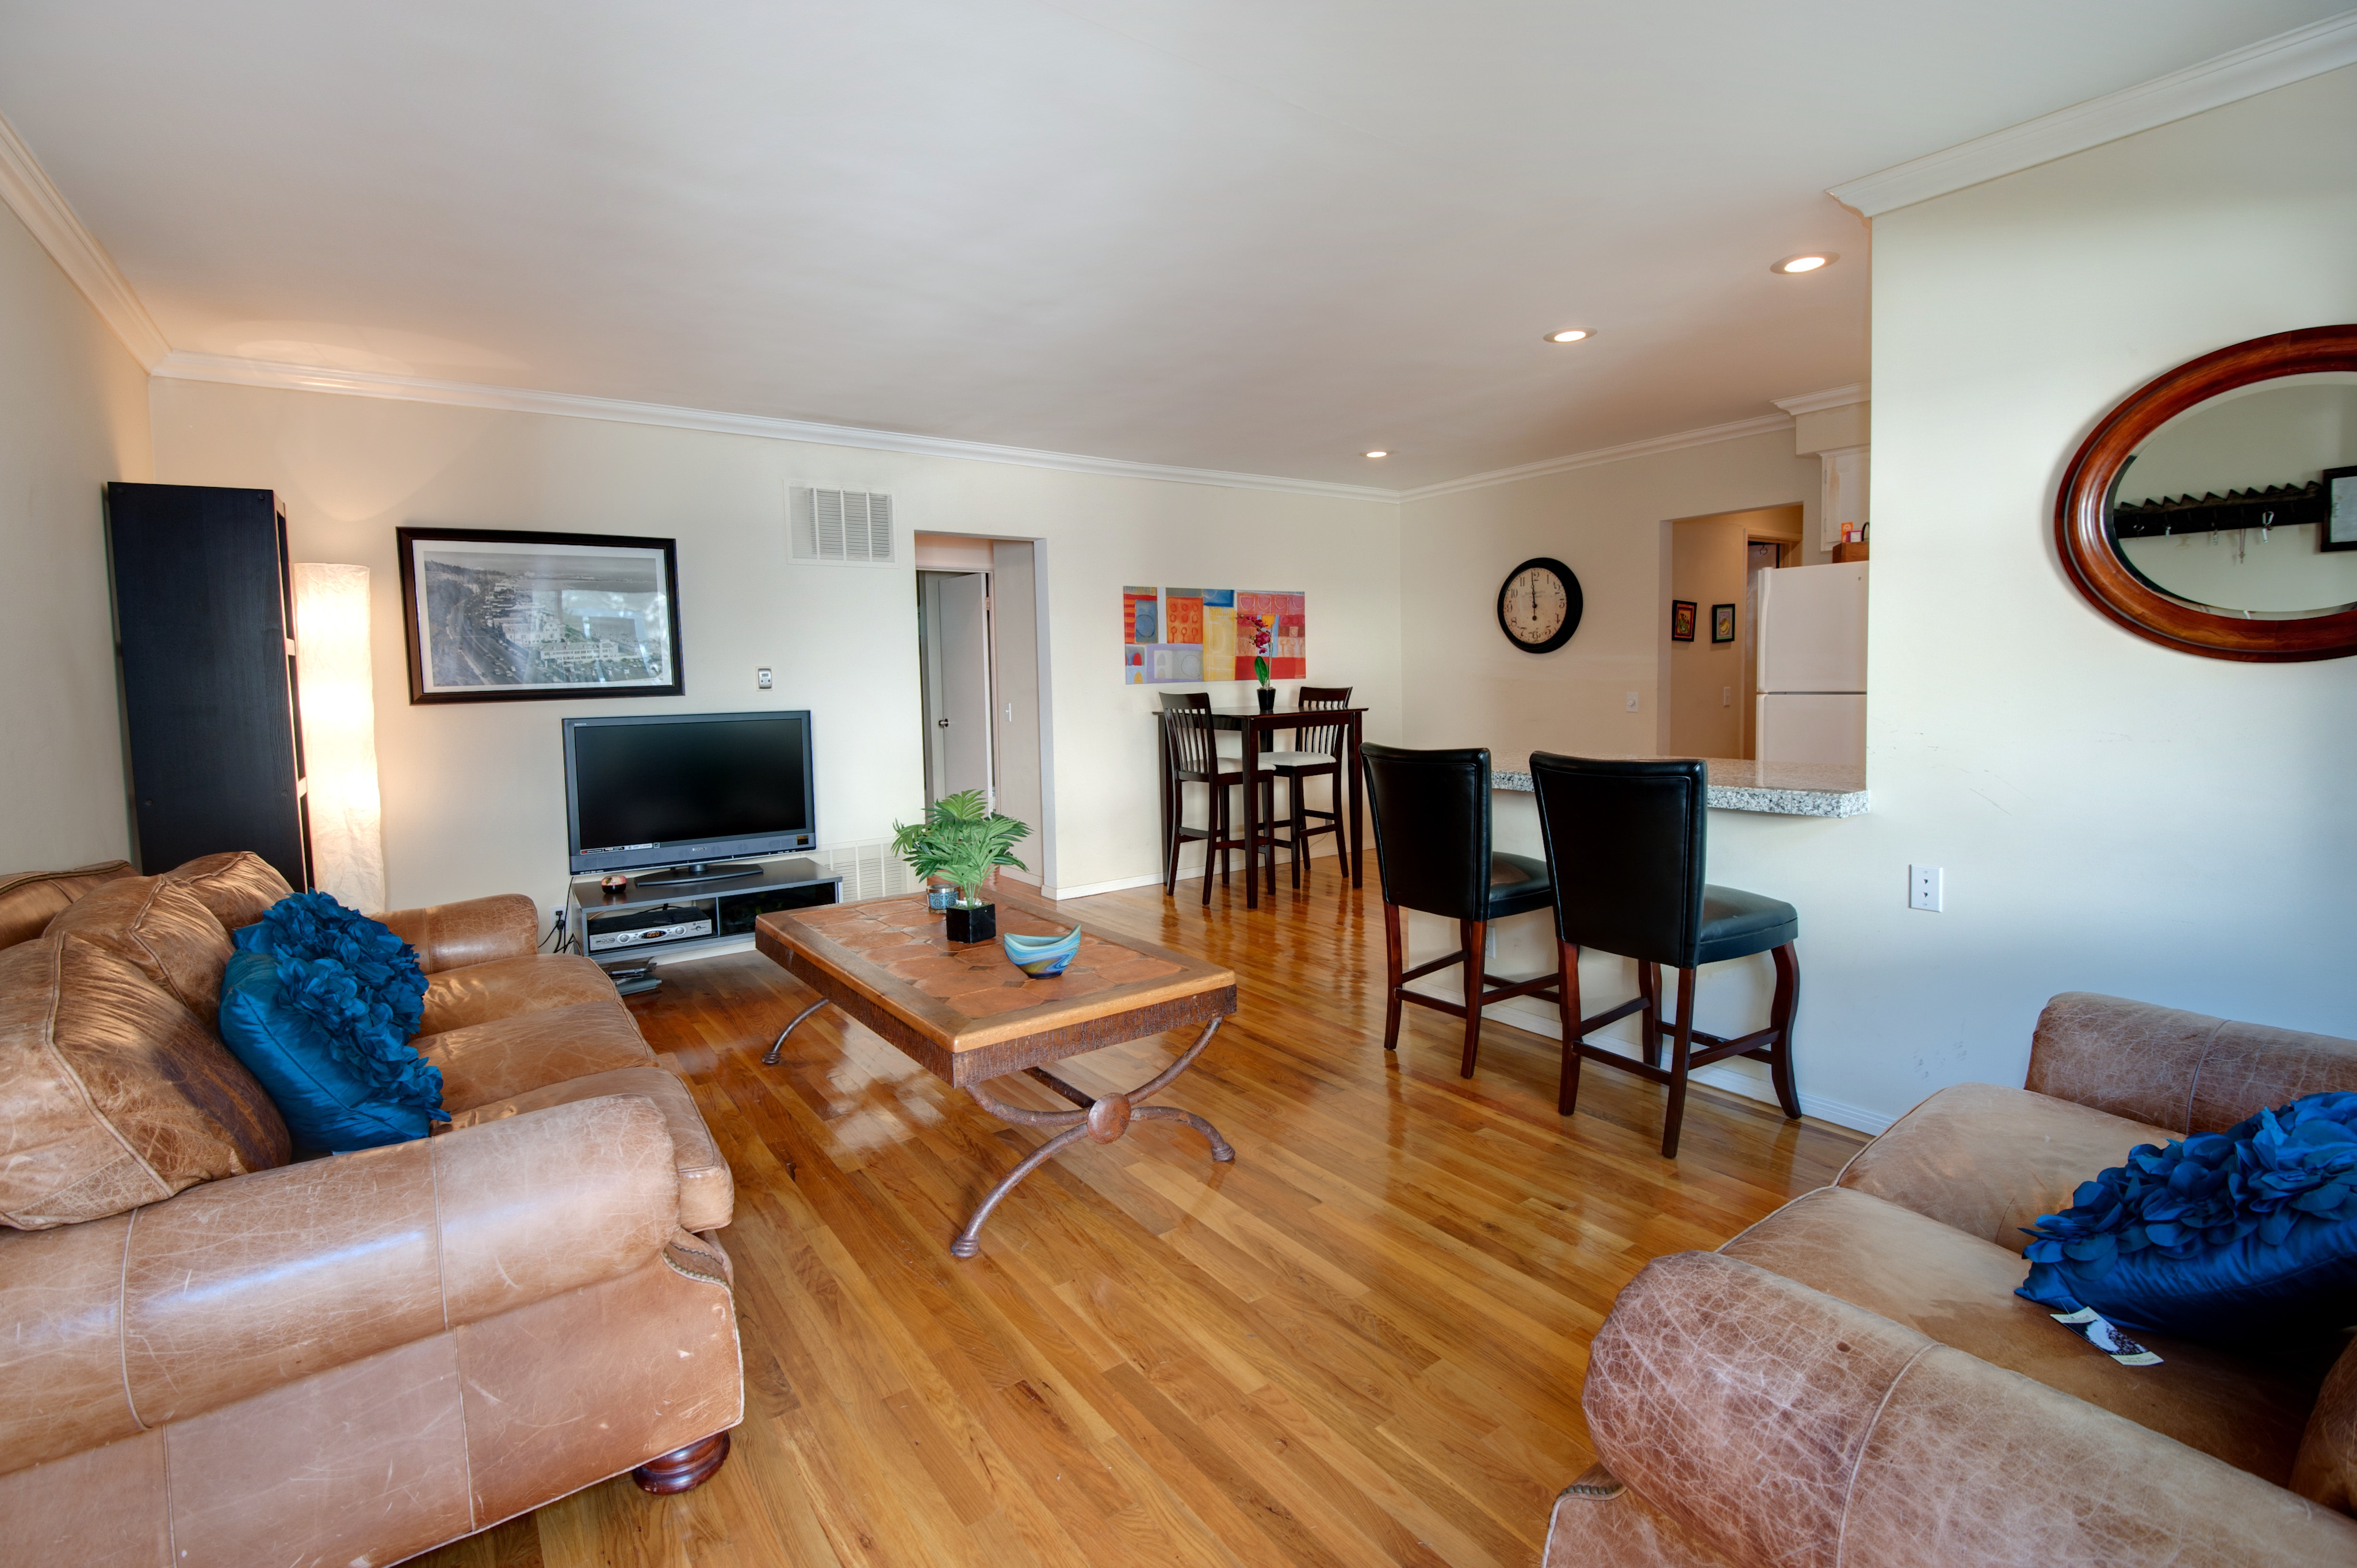 Condo for sale condos and homes for sale in santa monica for Homes for sale in los angeles area